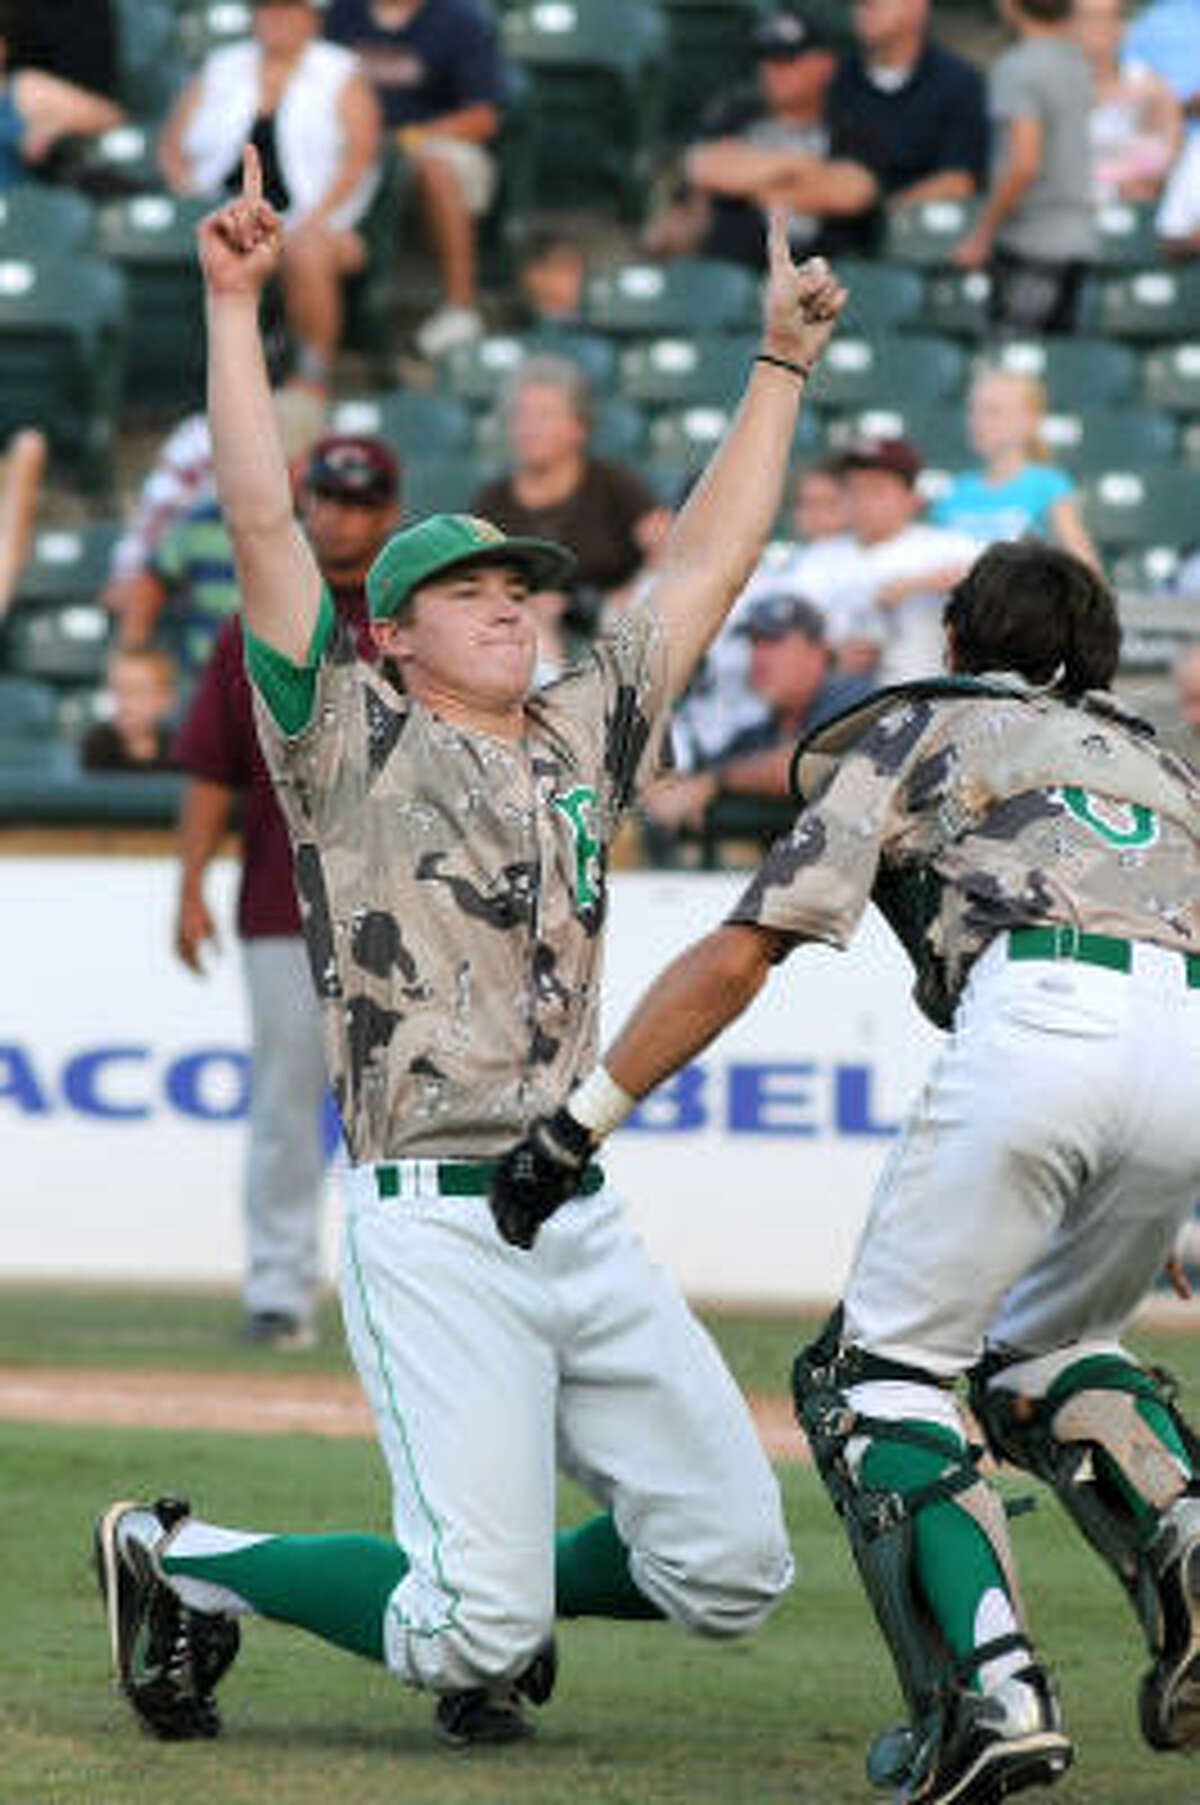 Brenham senior pitcher Chase Wellbrock celebrates after the final out of his complete game win over Corpus Christi Calallen in the Class 4A state finals game.